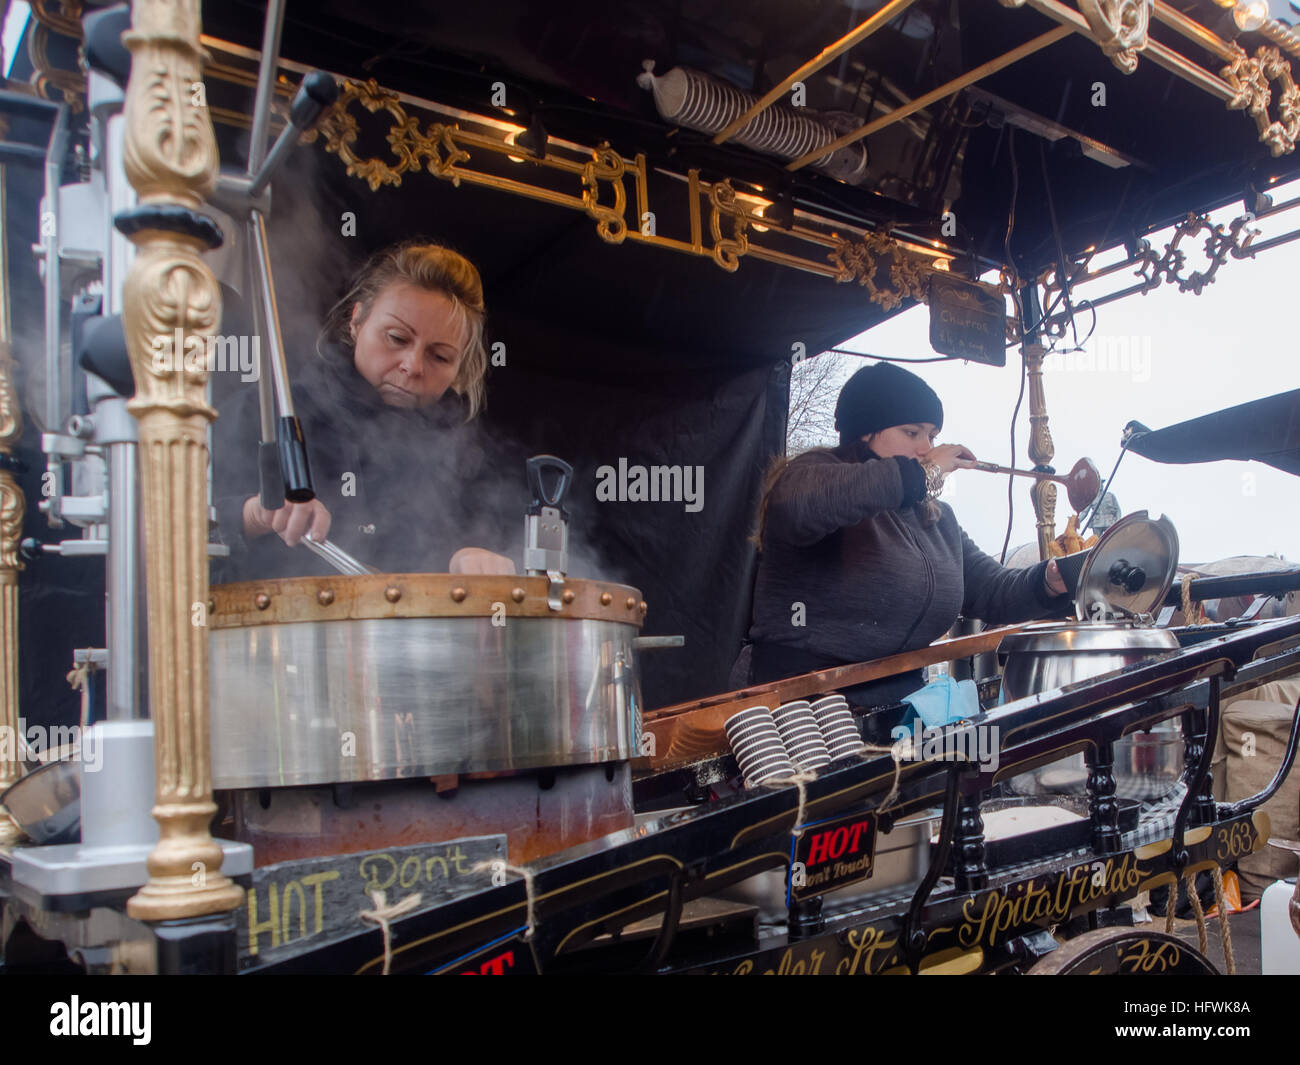 ladies-selling-hot-nuts-from-a-traditional-street-stall-at-a-christmas-HFWK8A.jpg